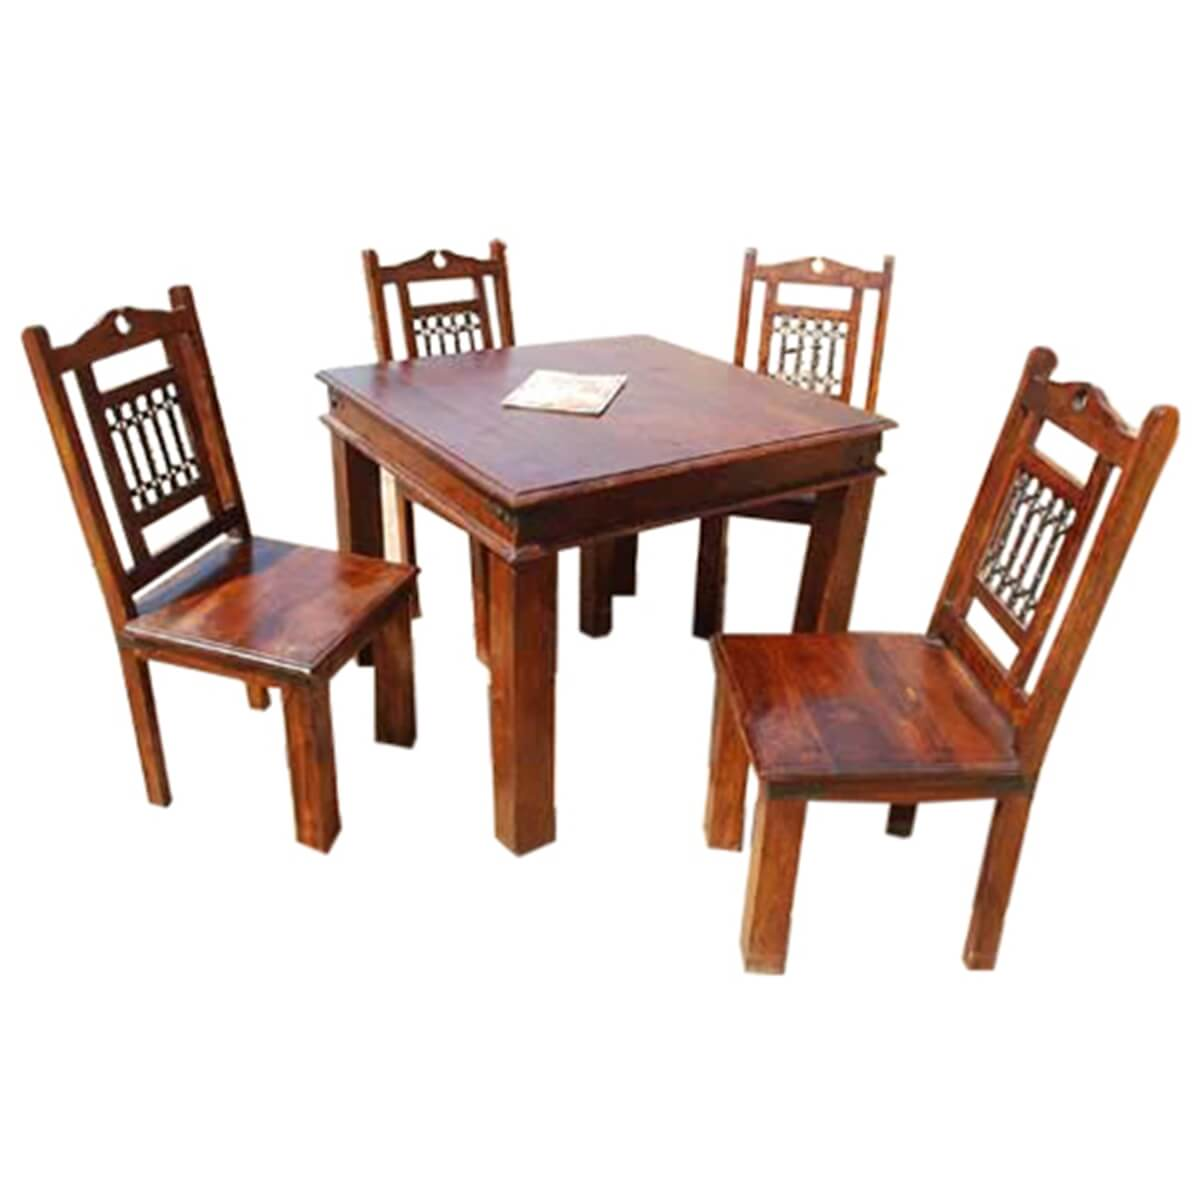 sets philadelphia transitional dining table chair set for 4 people